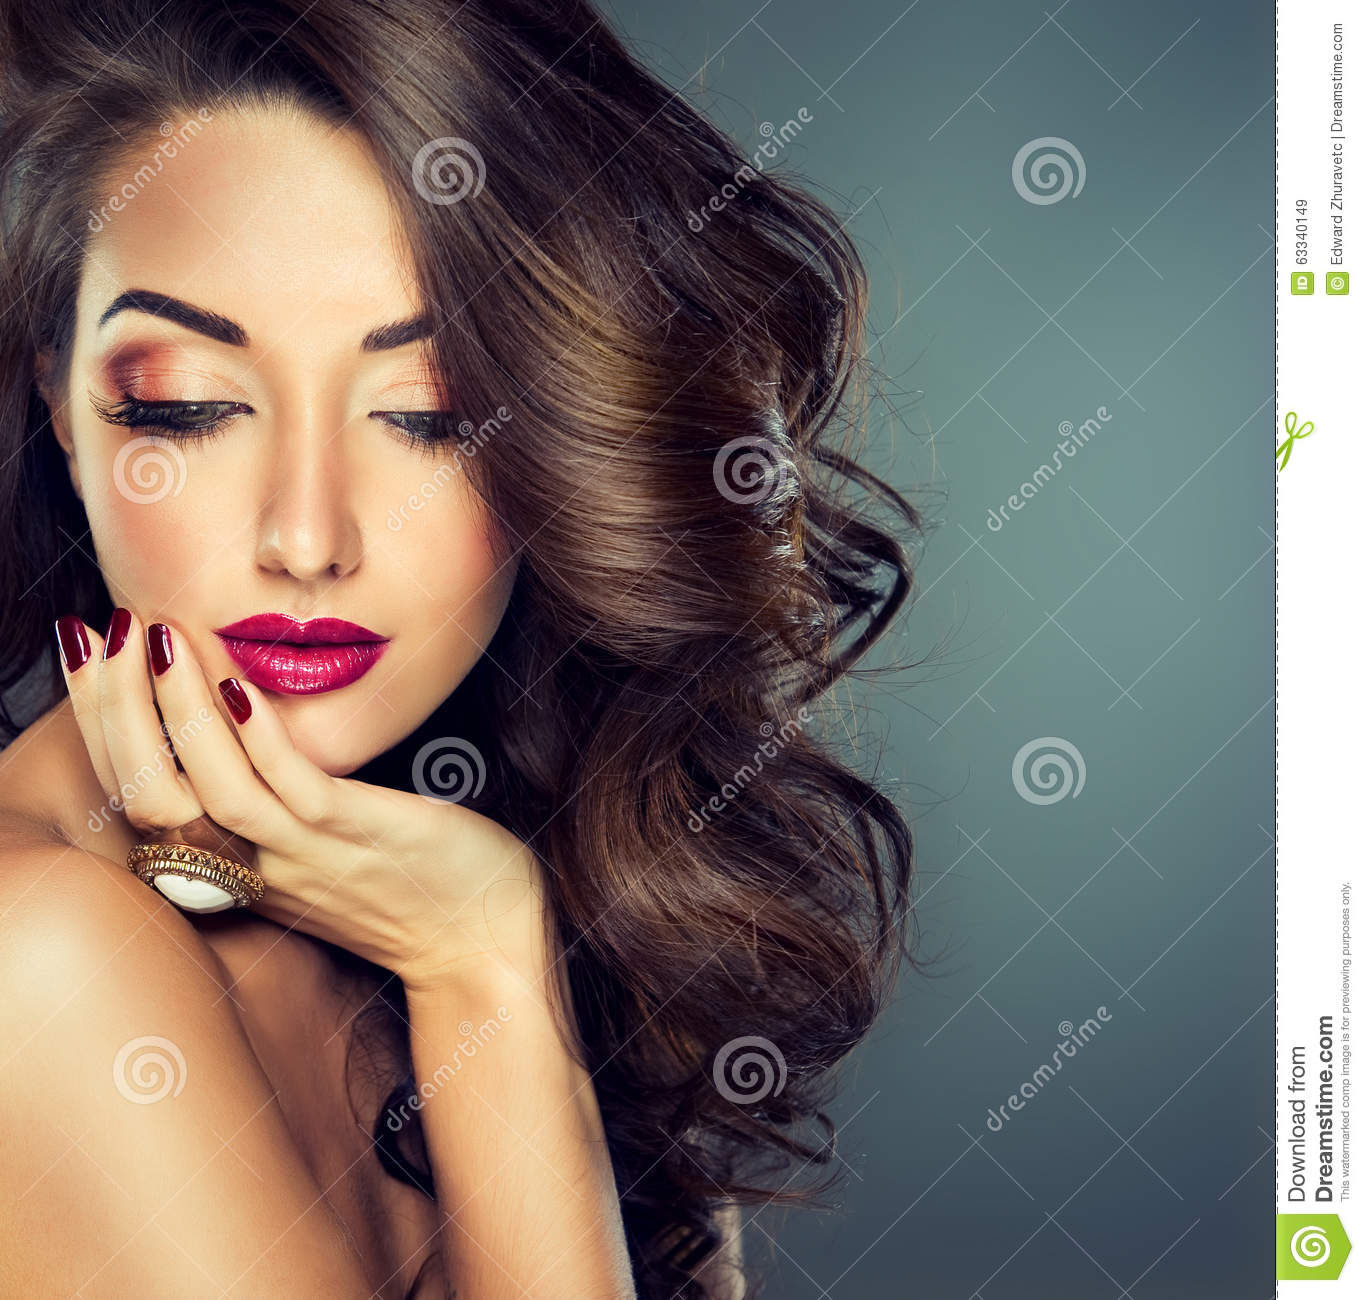 Beautiful model brunette with long curled hair stock image image 63340149 Fashion style and make up